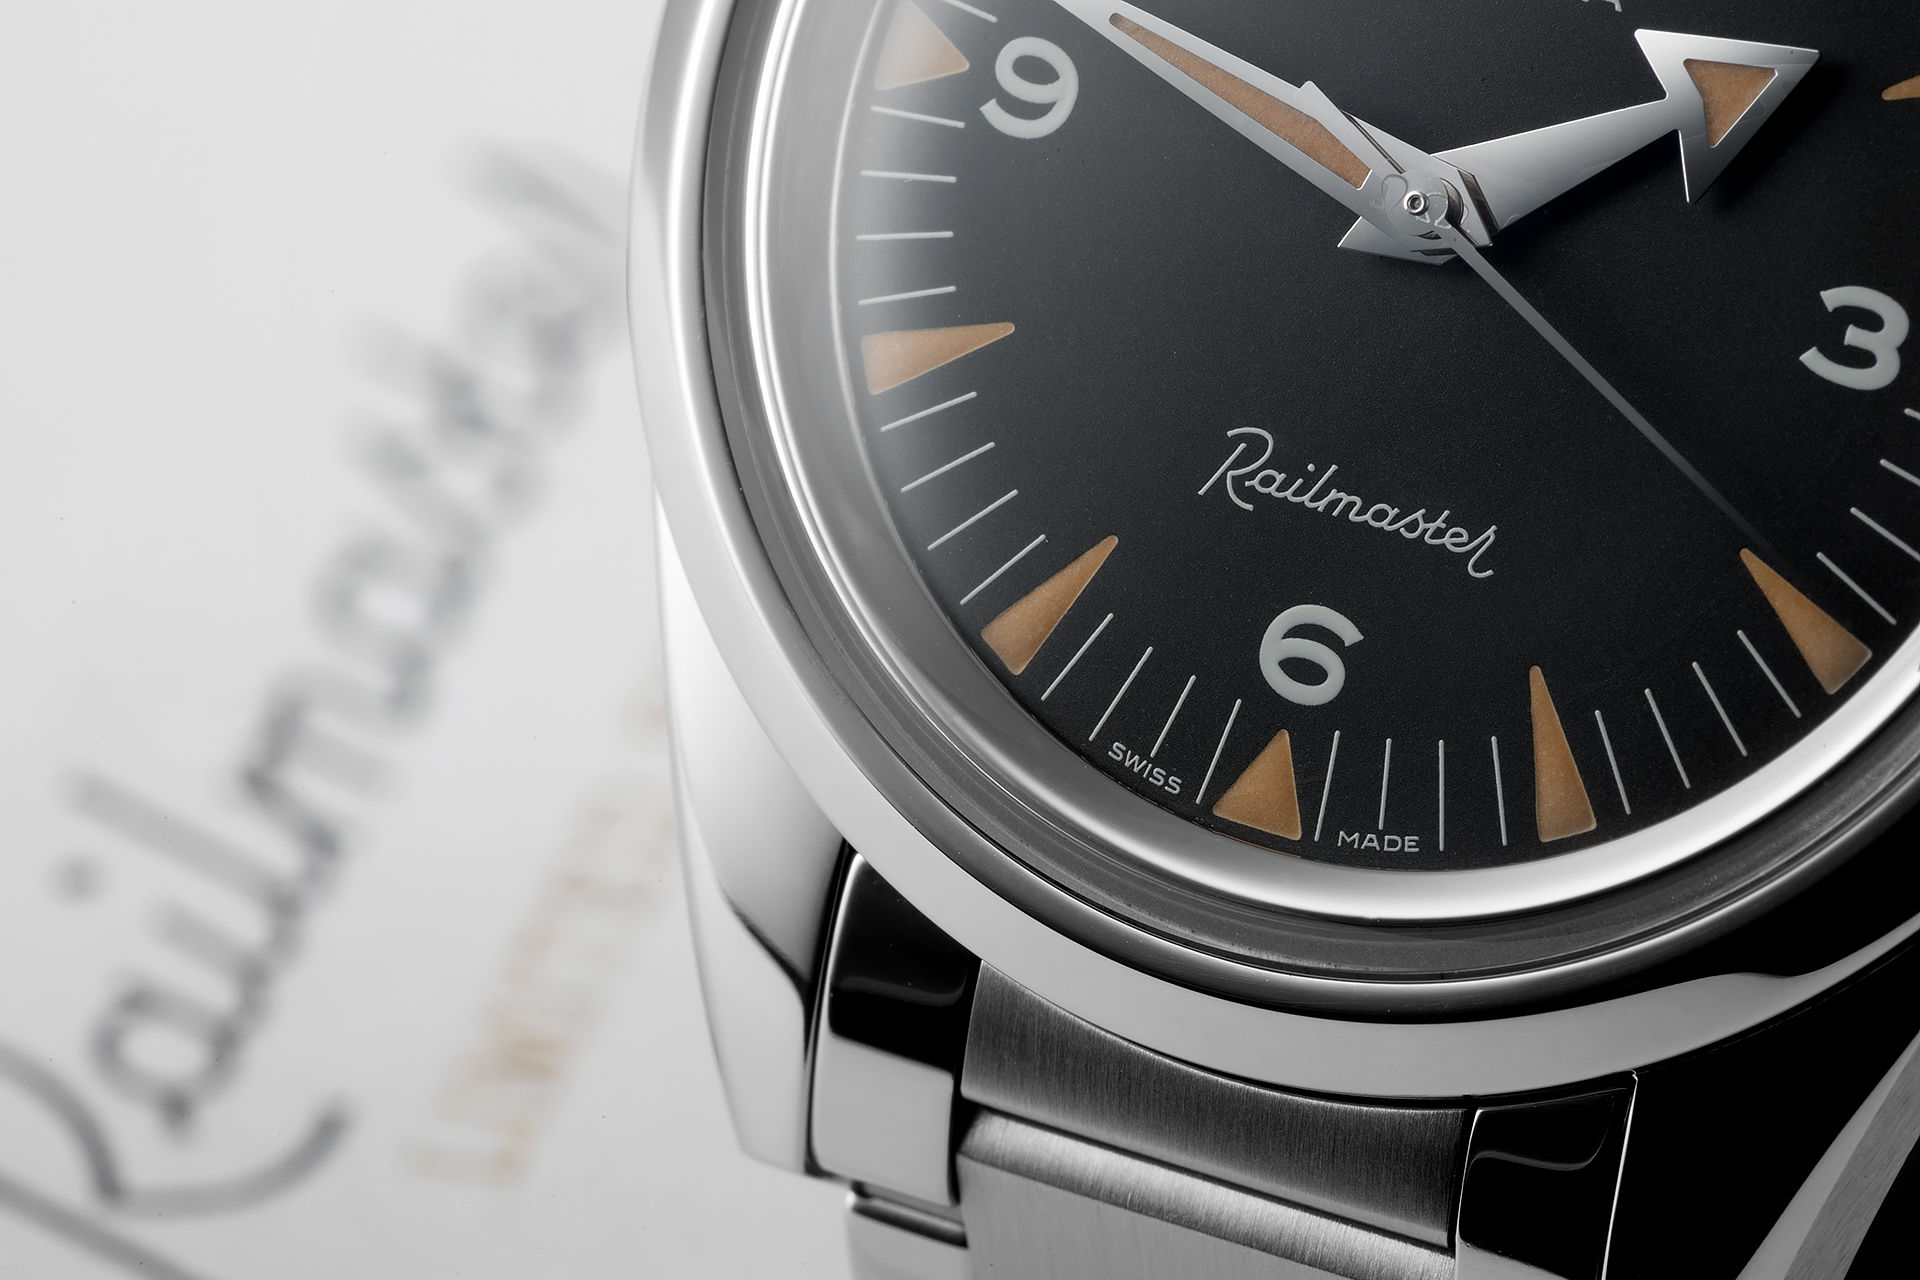 ref 22010382001002 | New '1957 Edition' | Omega Railmaster